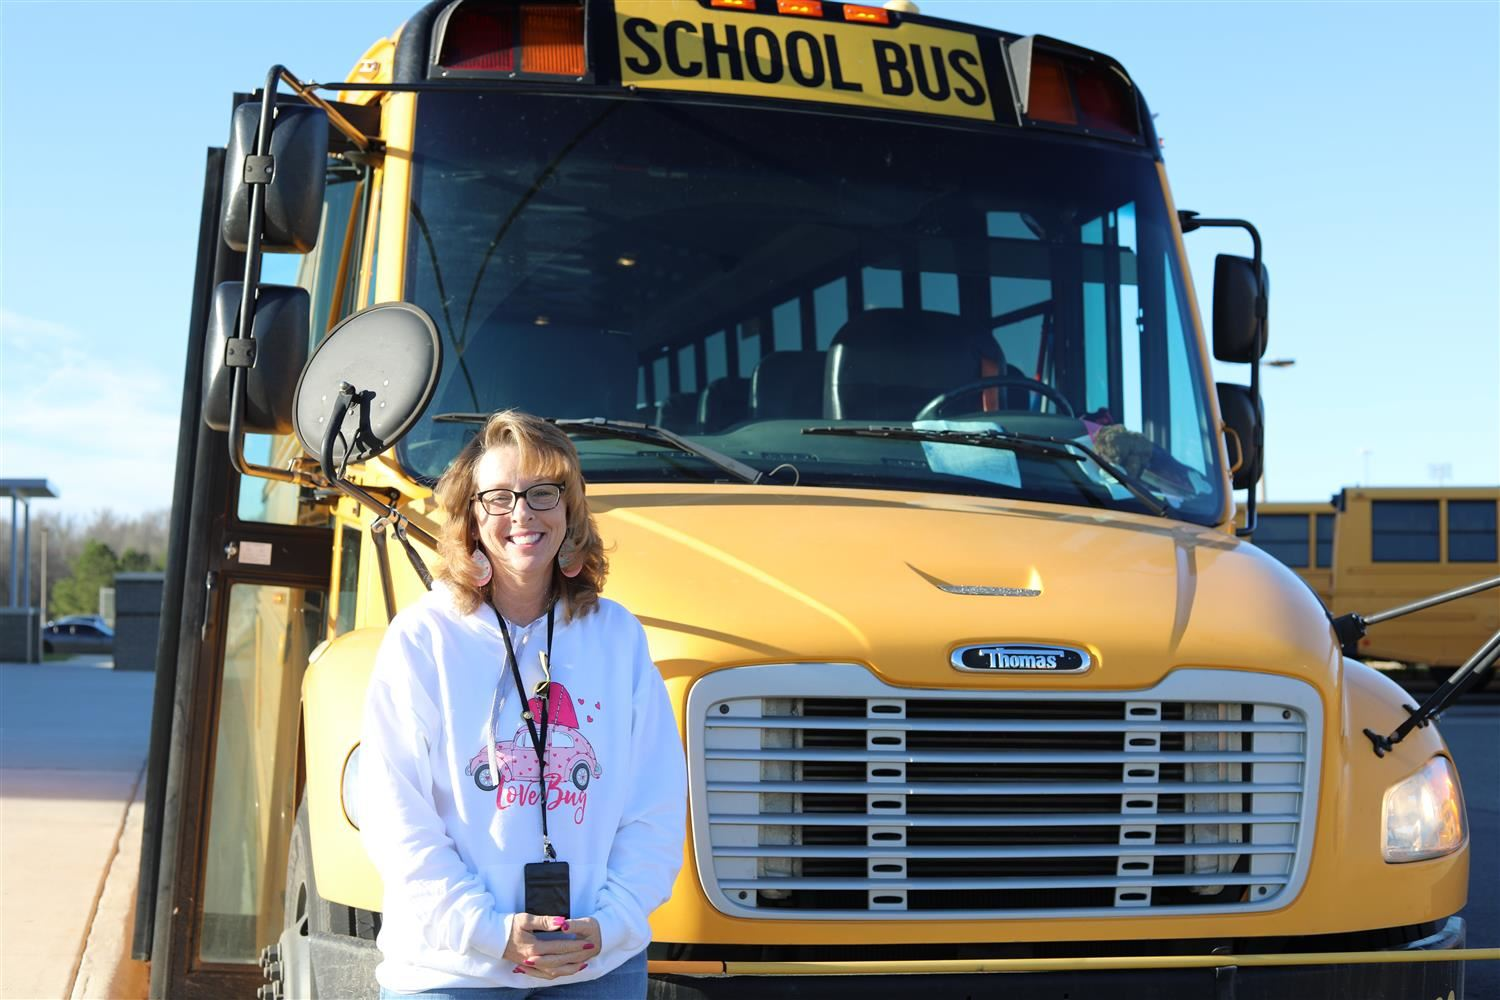 More than 'just a driver': UCPS bus driver Carol Keeter makes lasting impact in students' lives